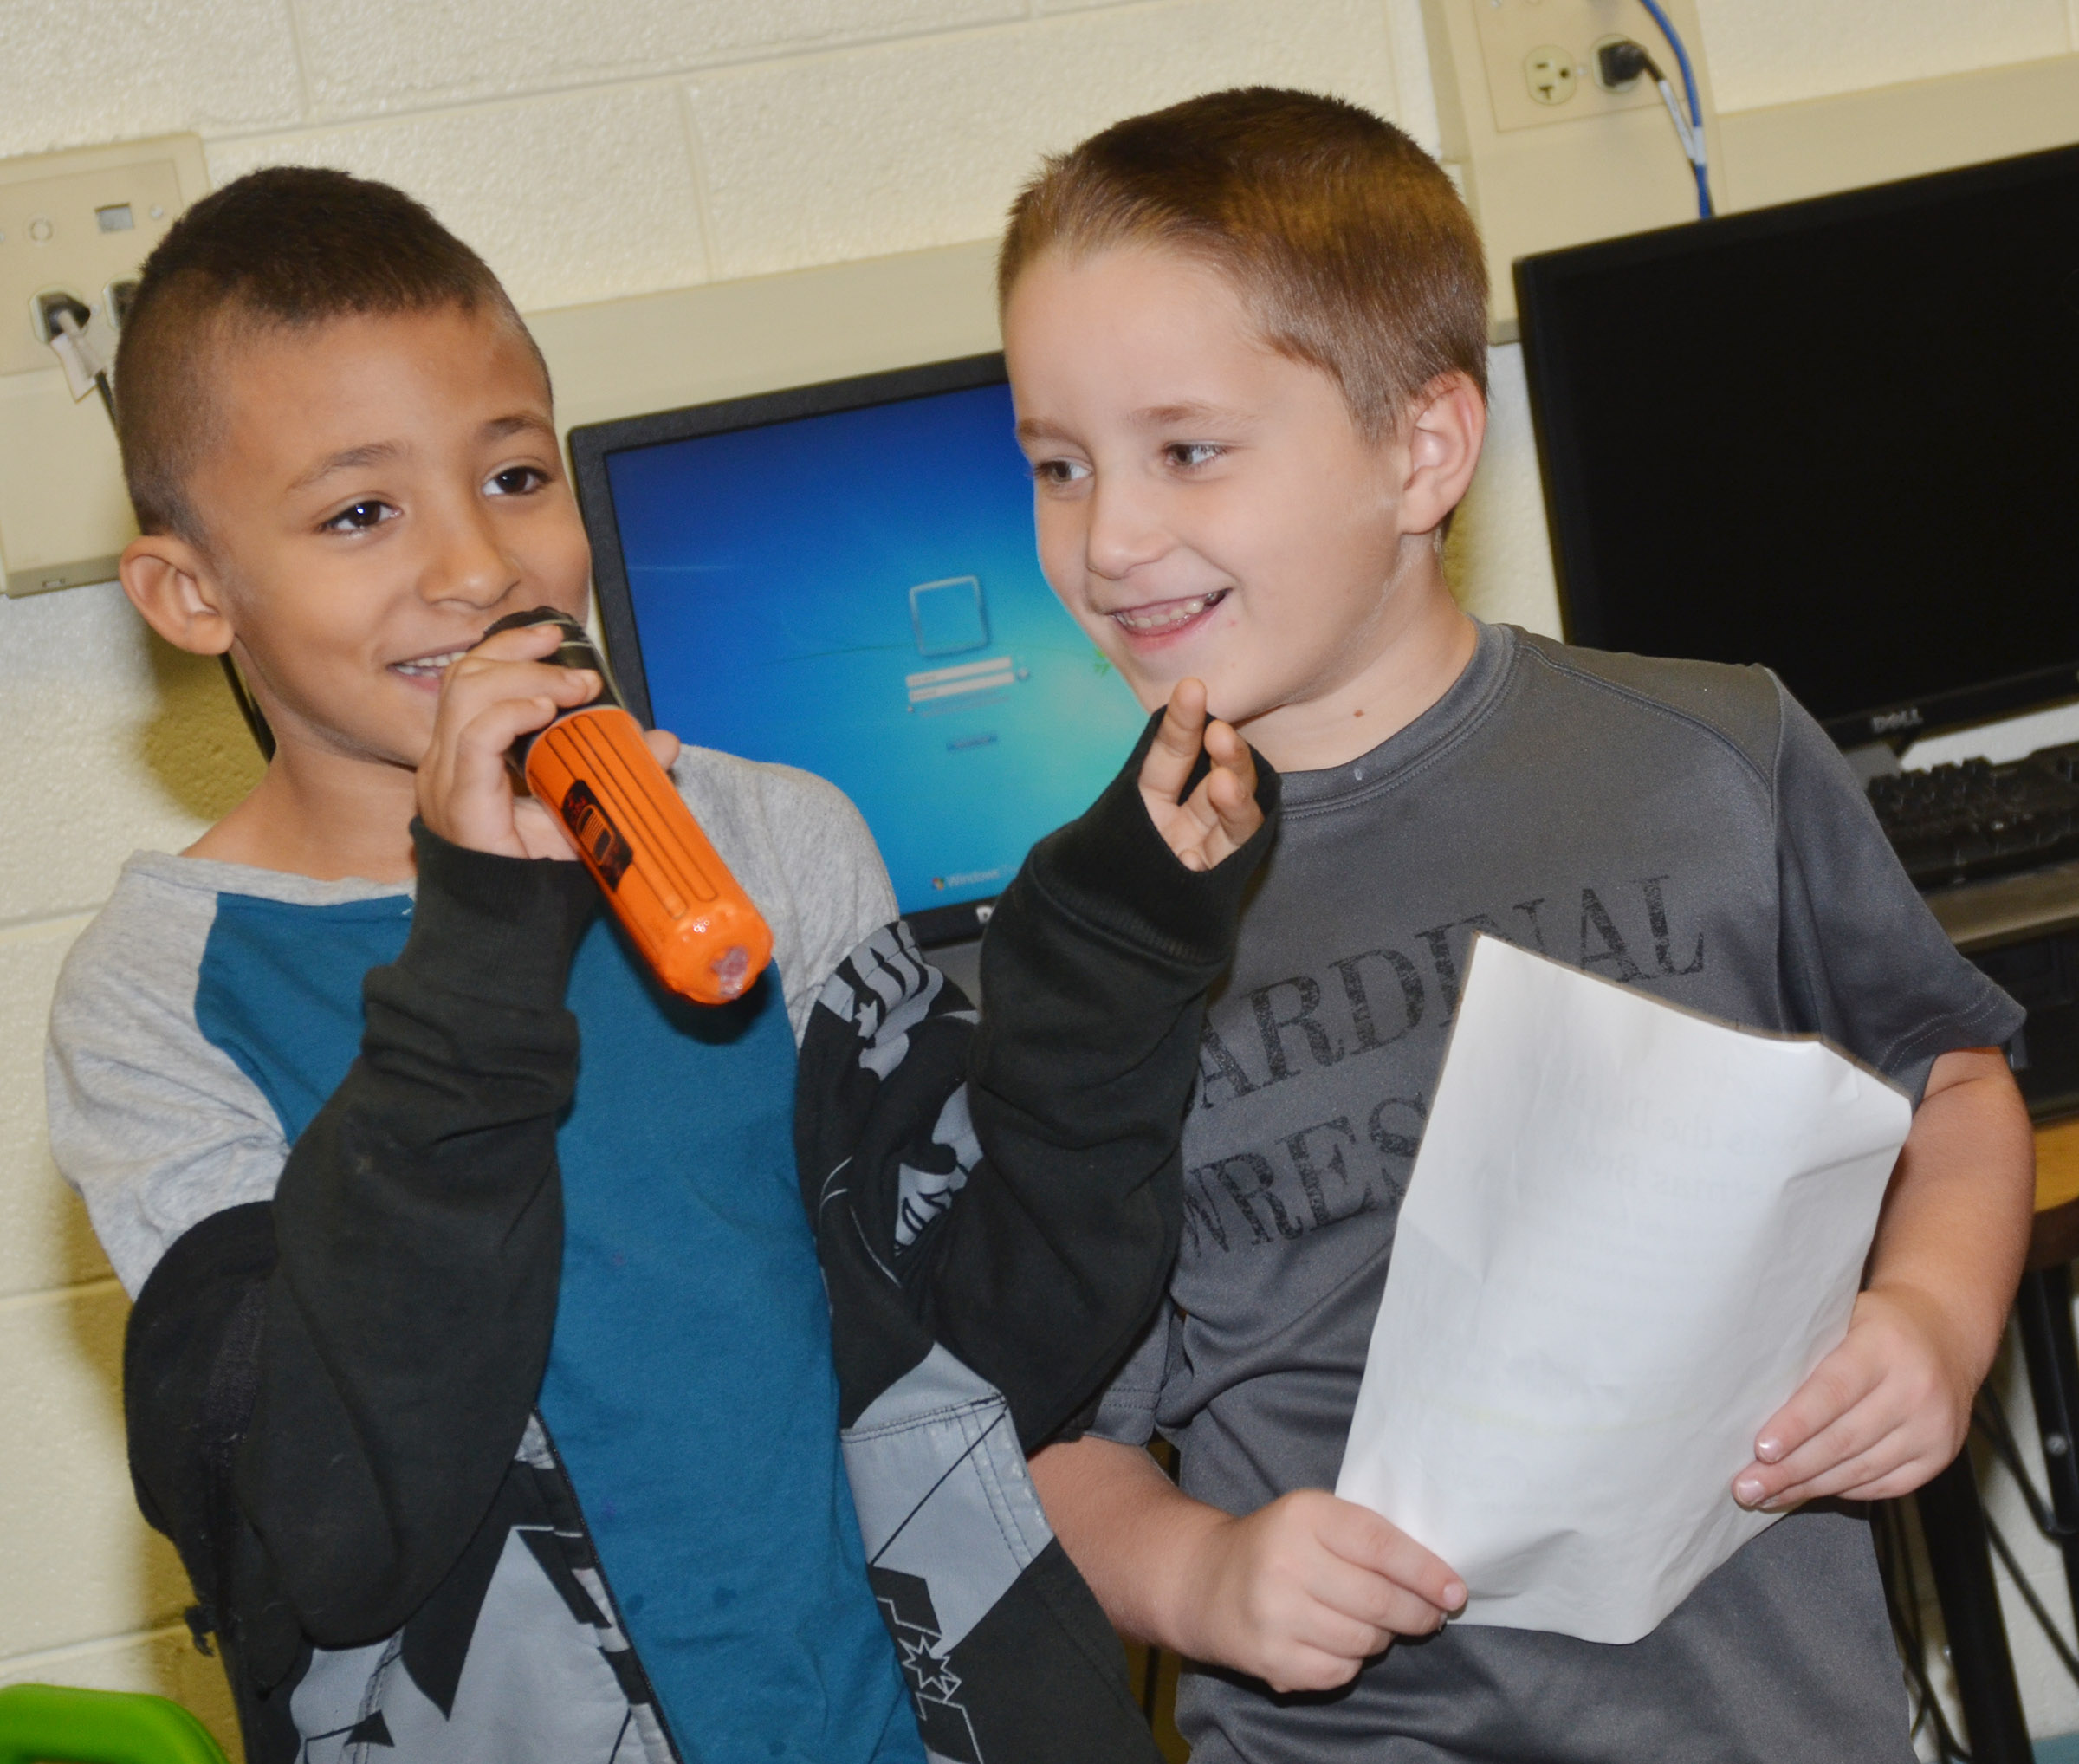 CES first-grader Elijah Williams, at left, delivers his lines as classmate Kaiden Bradfield listens.